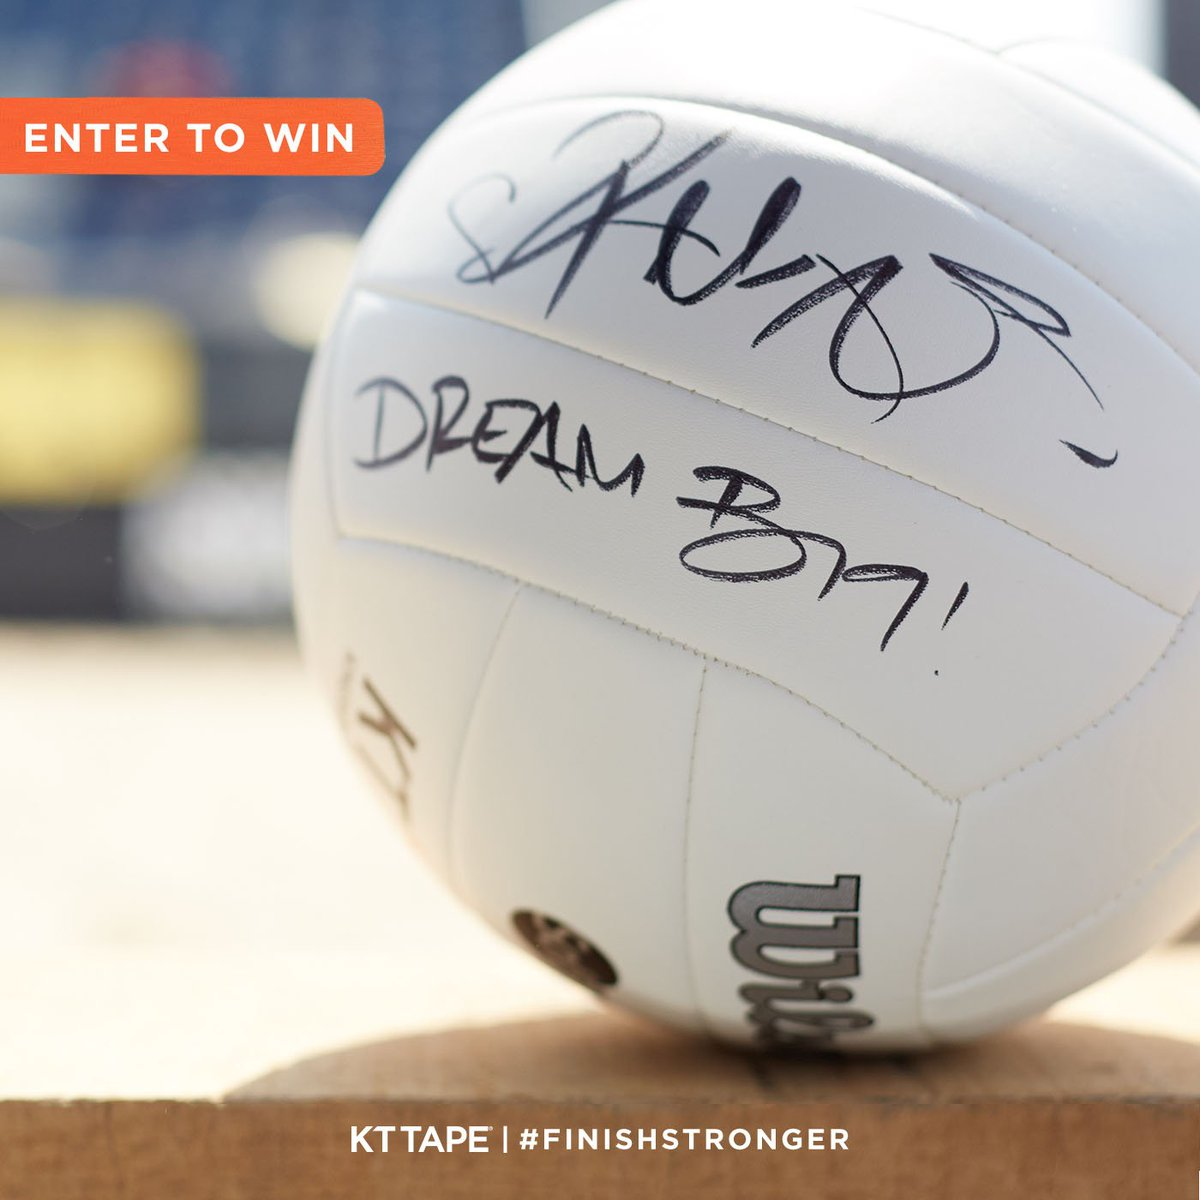 Serve up summer fun with a @KerriLeeWalsh-signed volleyball. Share for your chance to win. [https://t.co/zdlAPhrM51] https://t.co/KO5Zc0EeP1